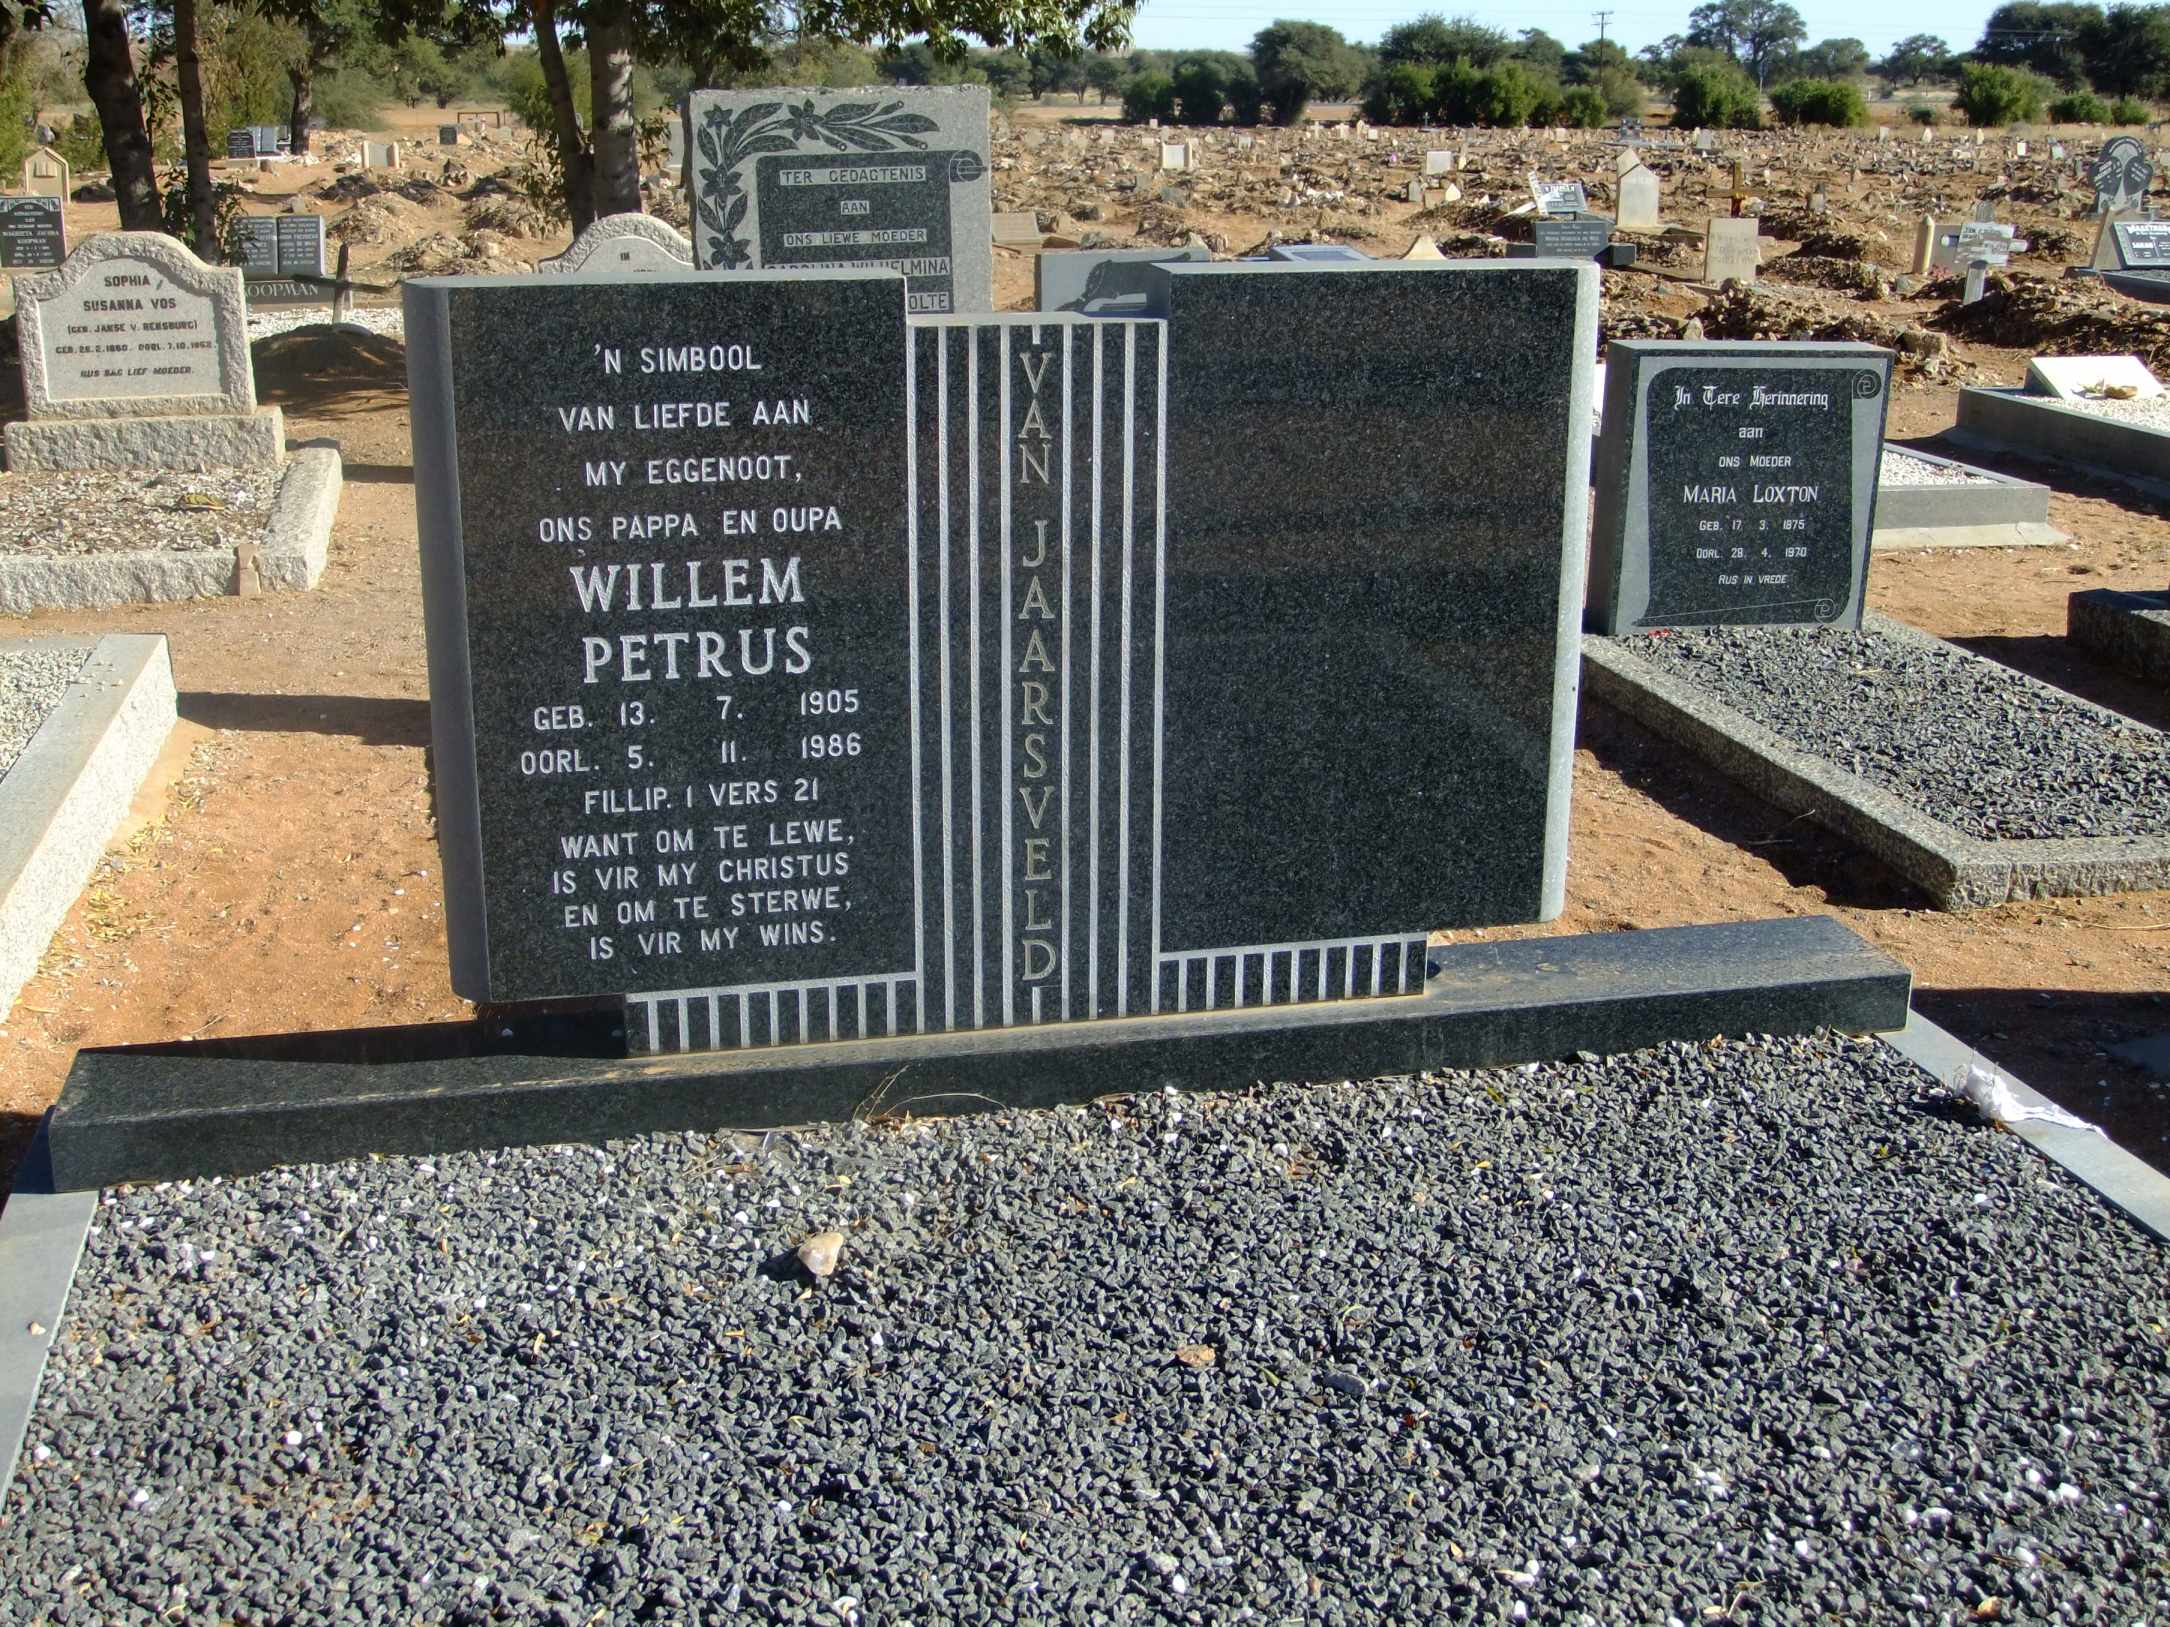 Van Jaarsveld, Willem Petrus born 13 July 1905 died 05 October 1986